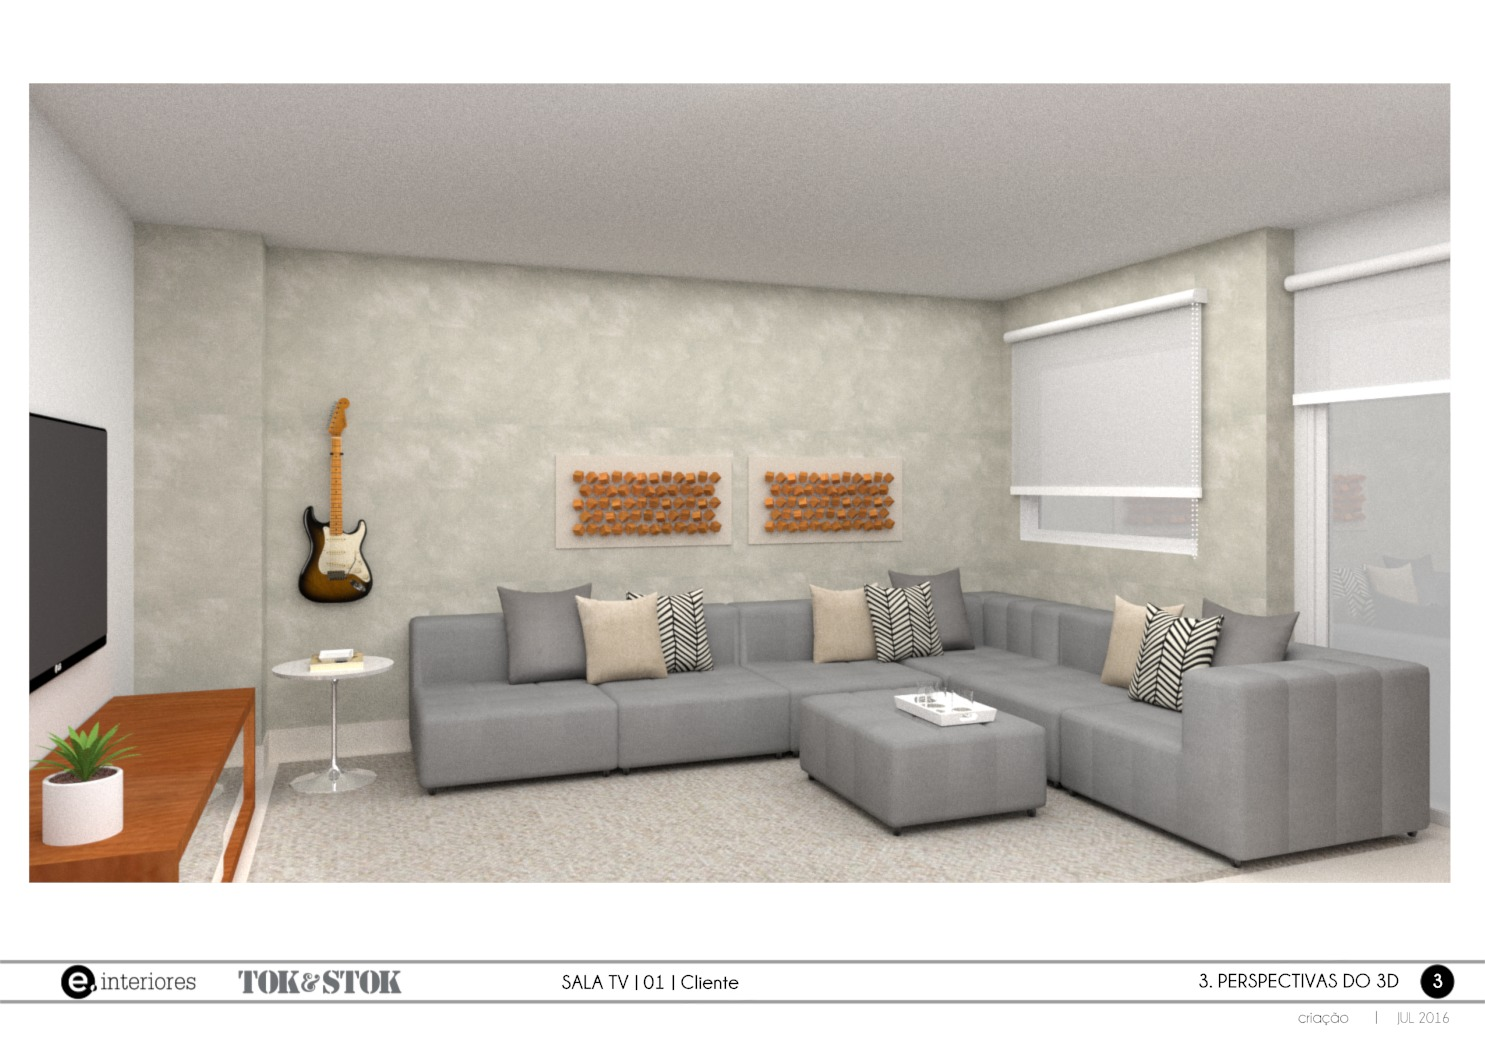 script thanks possibilities to interior experience design and customization next org blender put s interiores an user our e together end generation with stories designer architects we